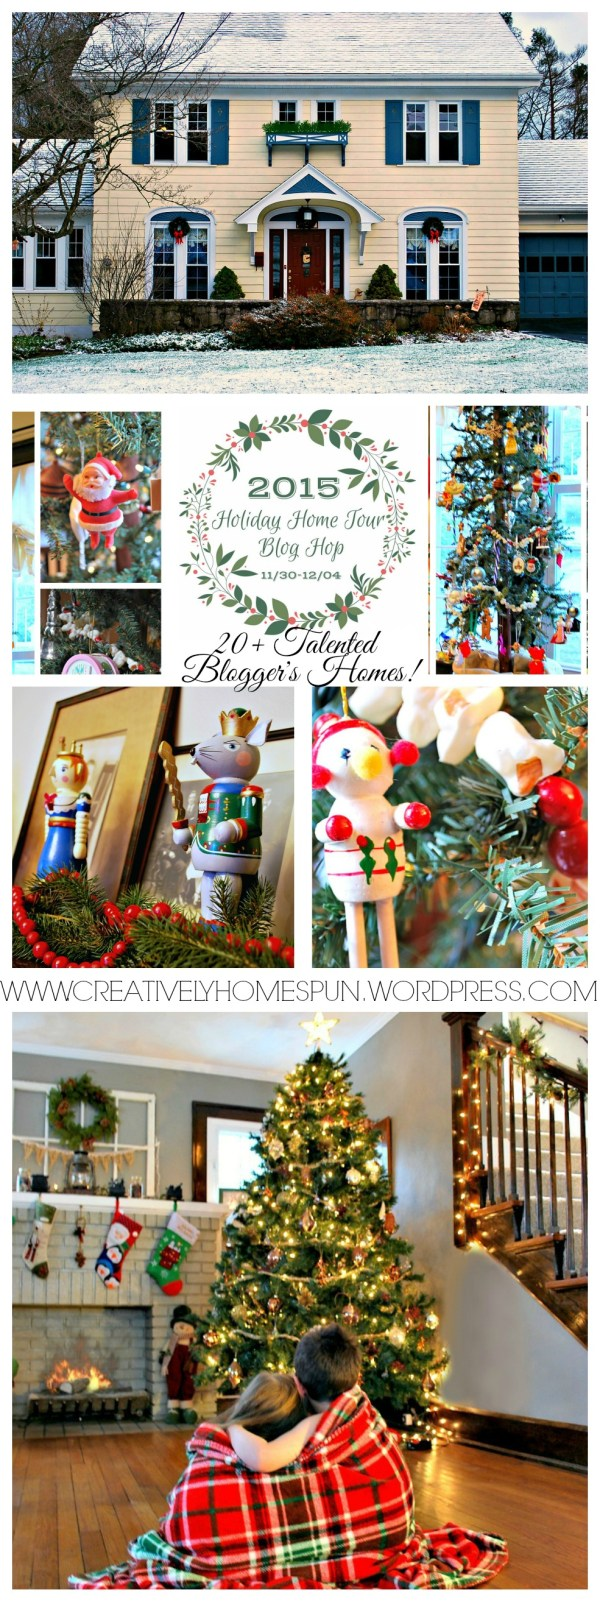 24 Talented Bloggers teamed together to create the BEST list of Home Tours you will find! 2015 Holiday Home Tour is up on the blog! Stop by and take a look at how I filled our 1920's home with the Christmas Spirit! h